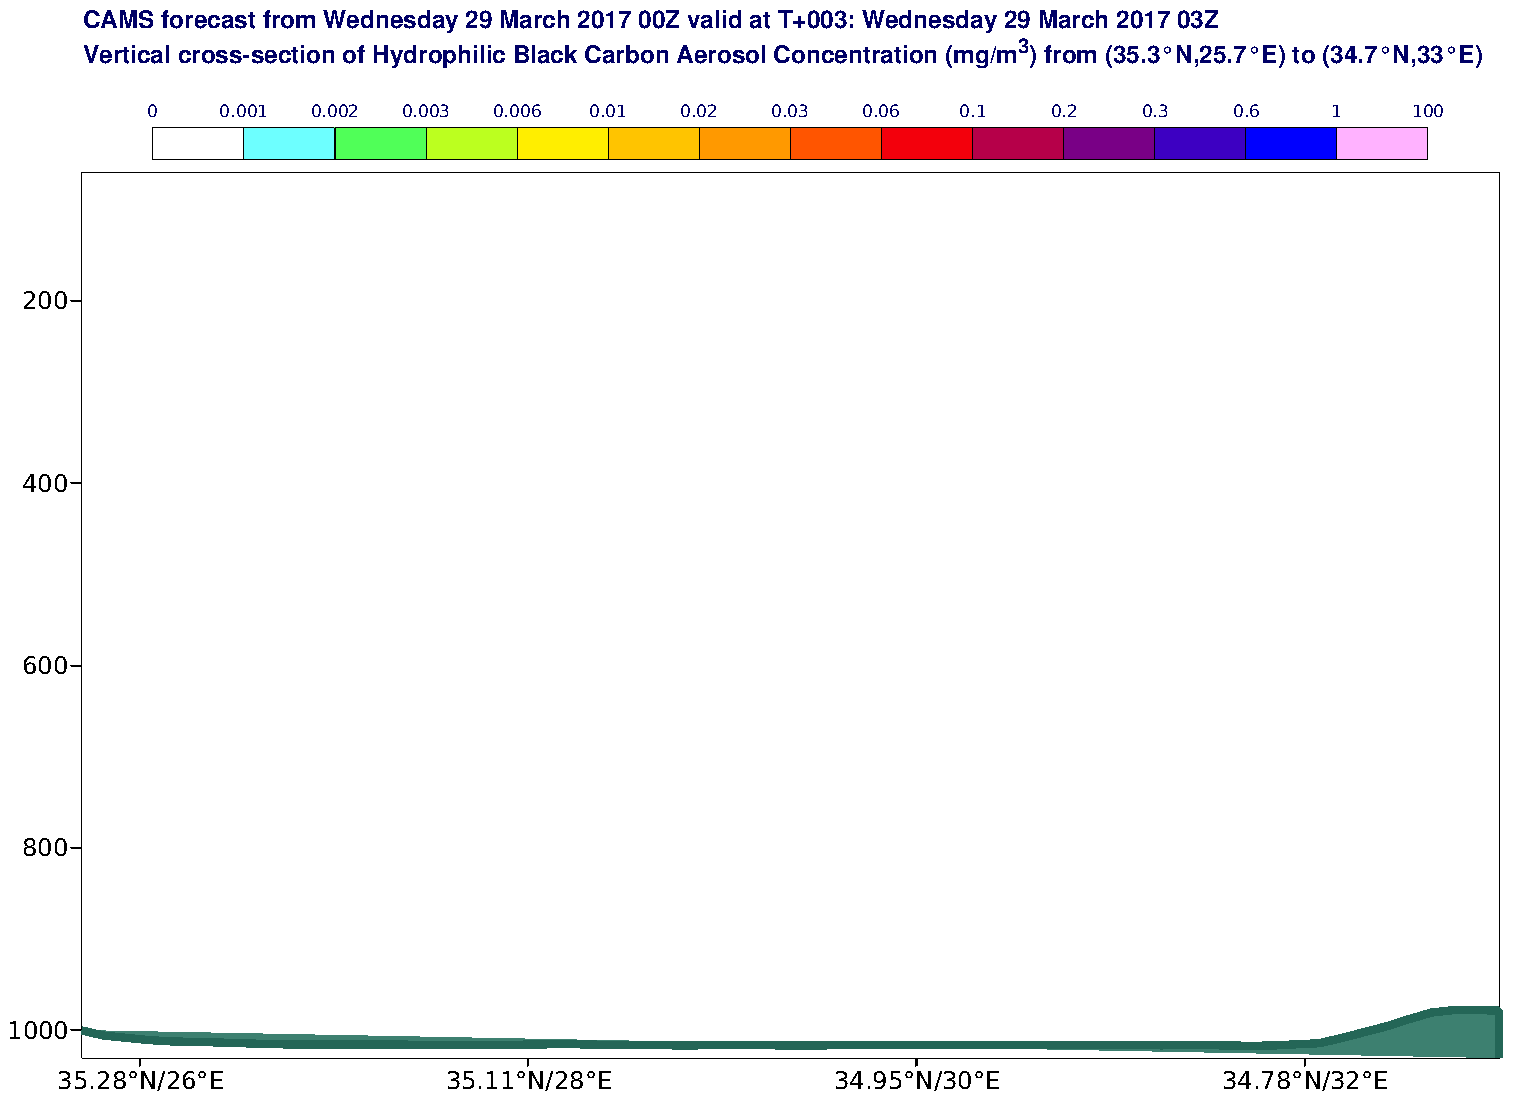 Vertical cross-section of Hydrophilic Black Carbon Aerosol Concentration (mg/m3) valid at T3 - 2017-03-29 03:00